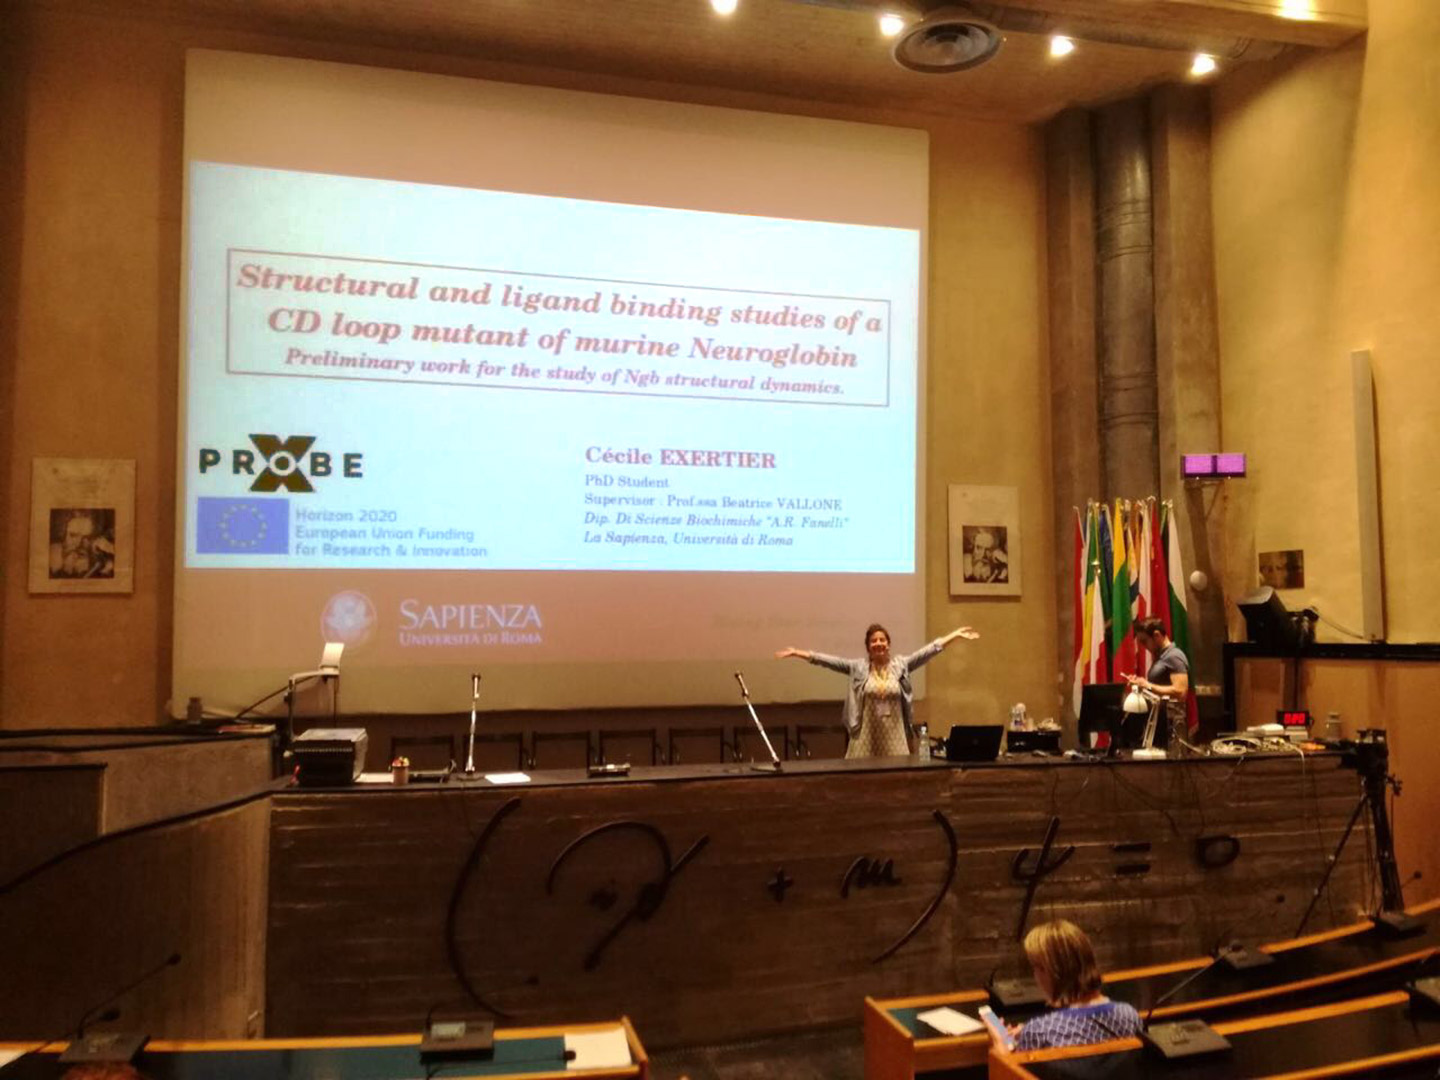 X-Probe Fellow Cécile Exertier presents part of her PhD work at the Erice International Crystallography School